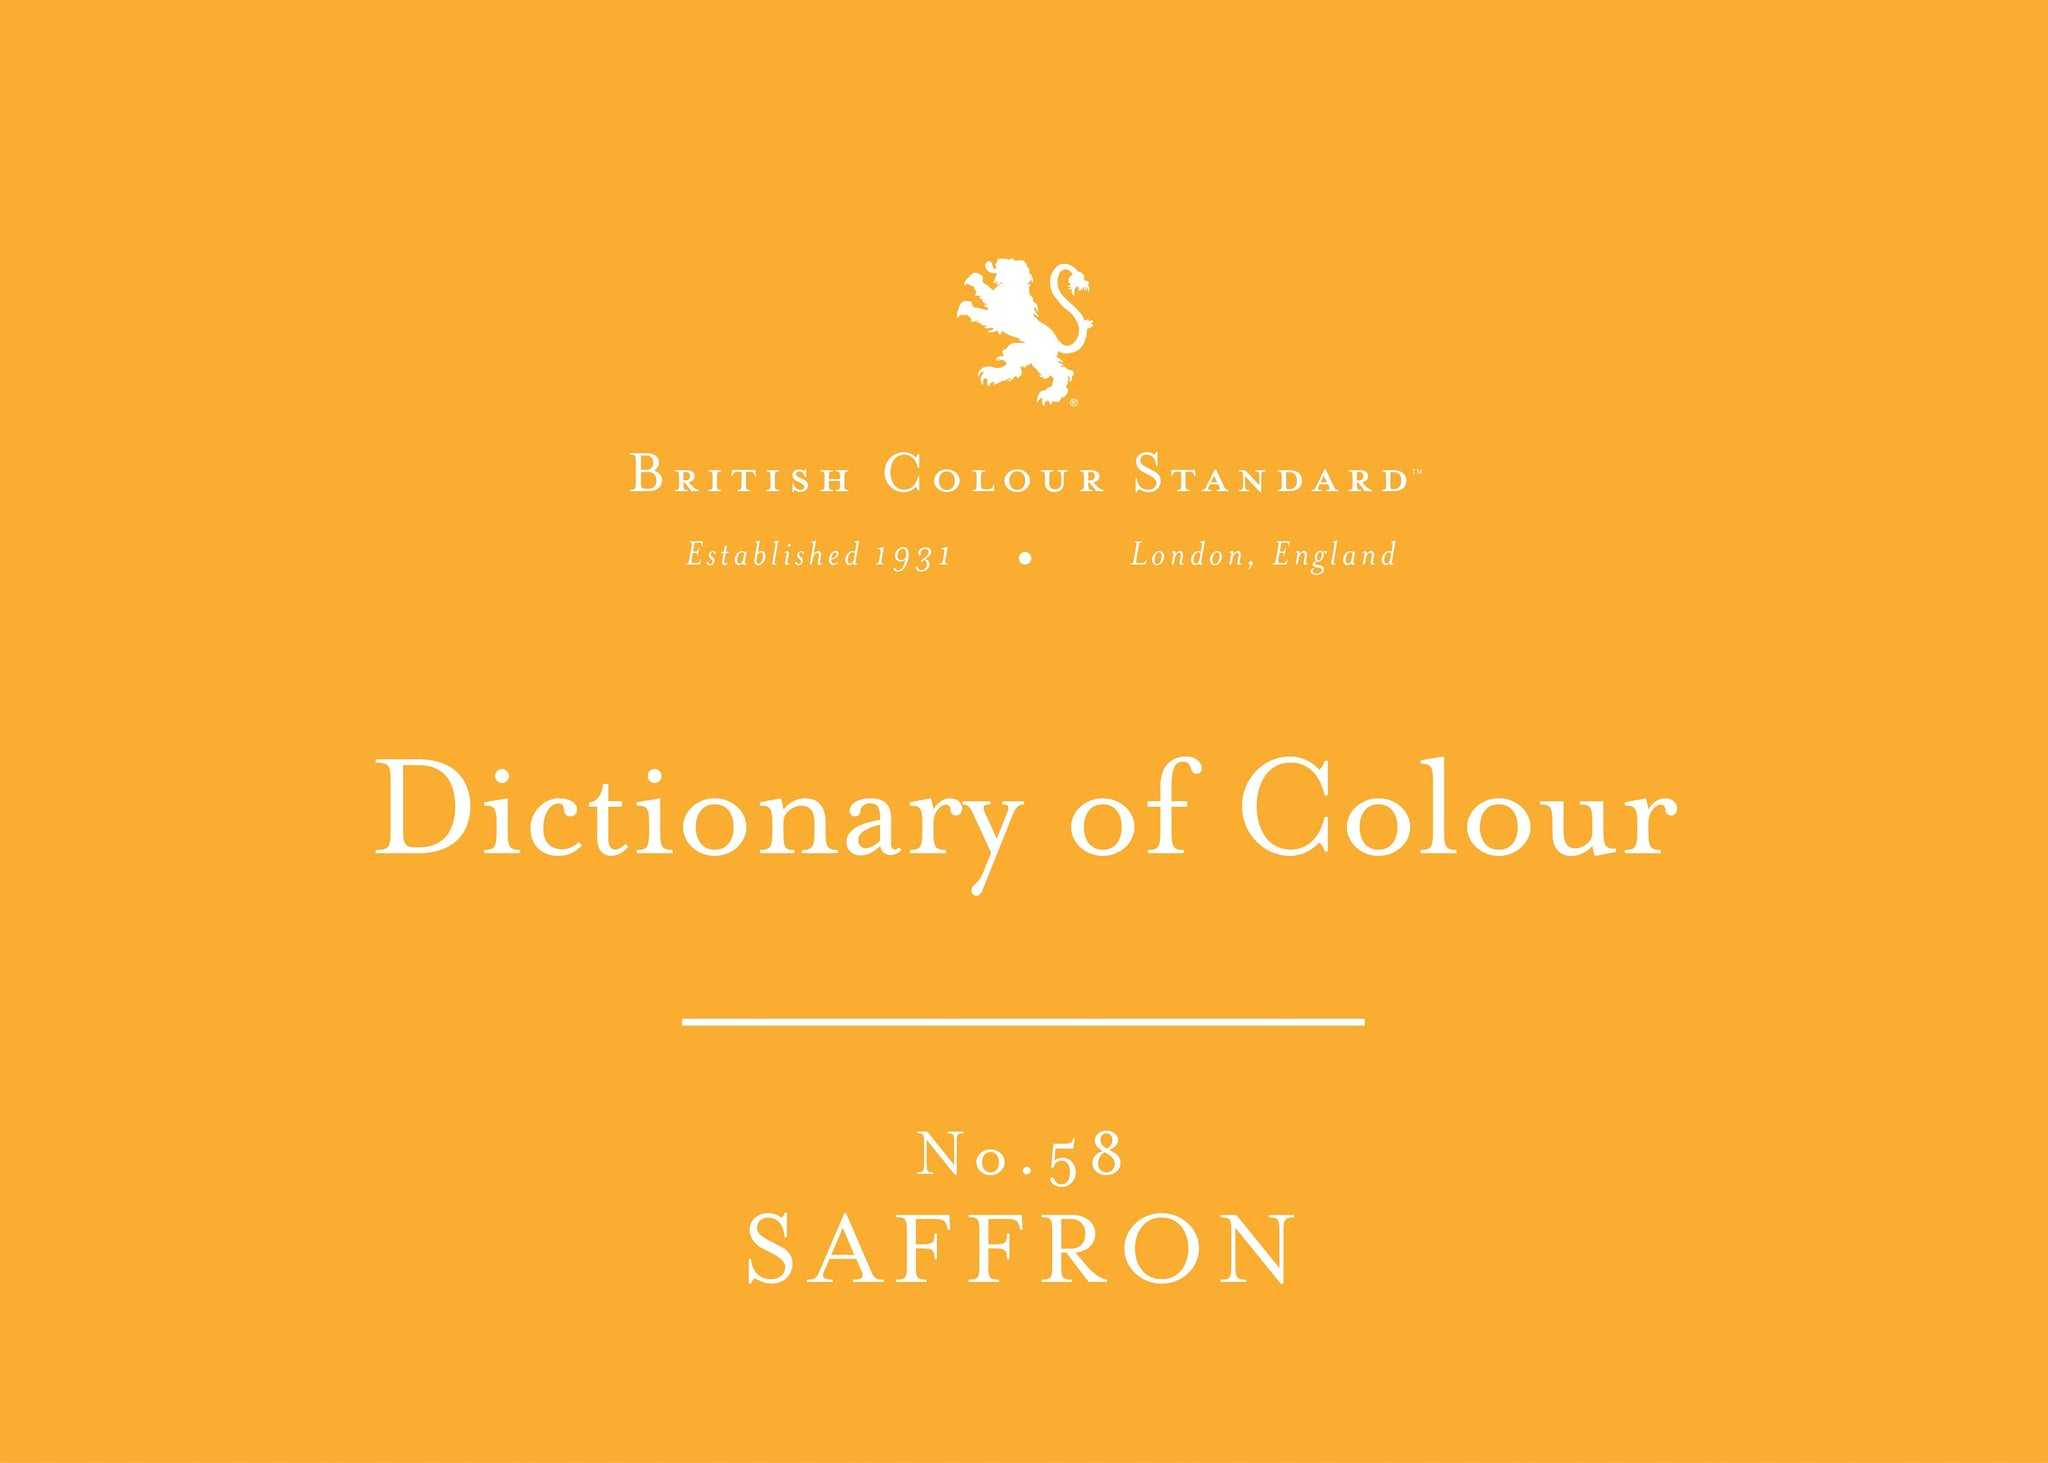 BRITISH COLOUR STANDARD - Saffron No. 58